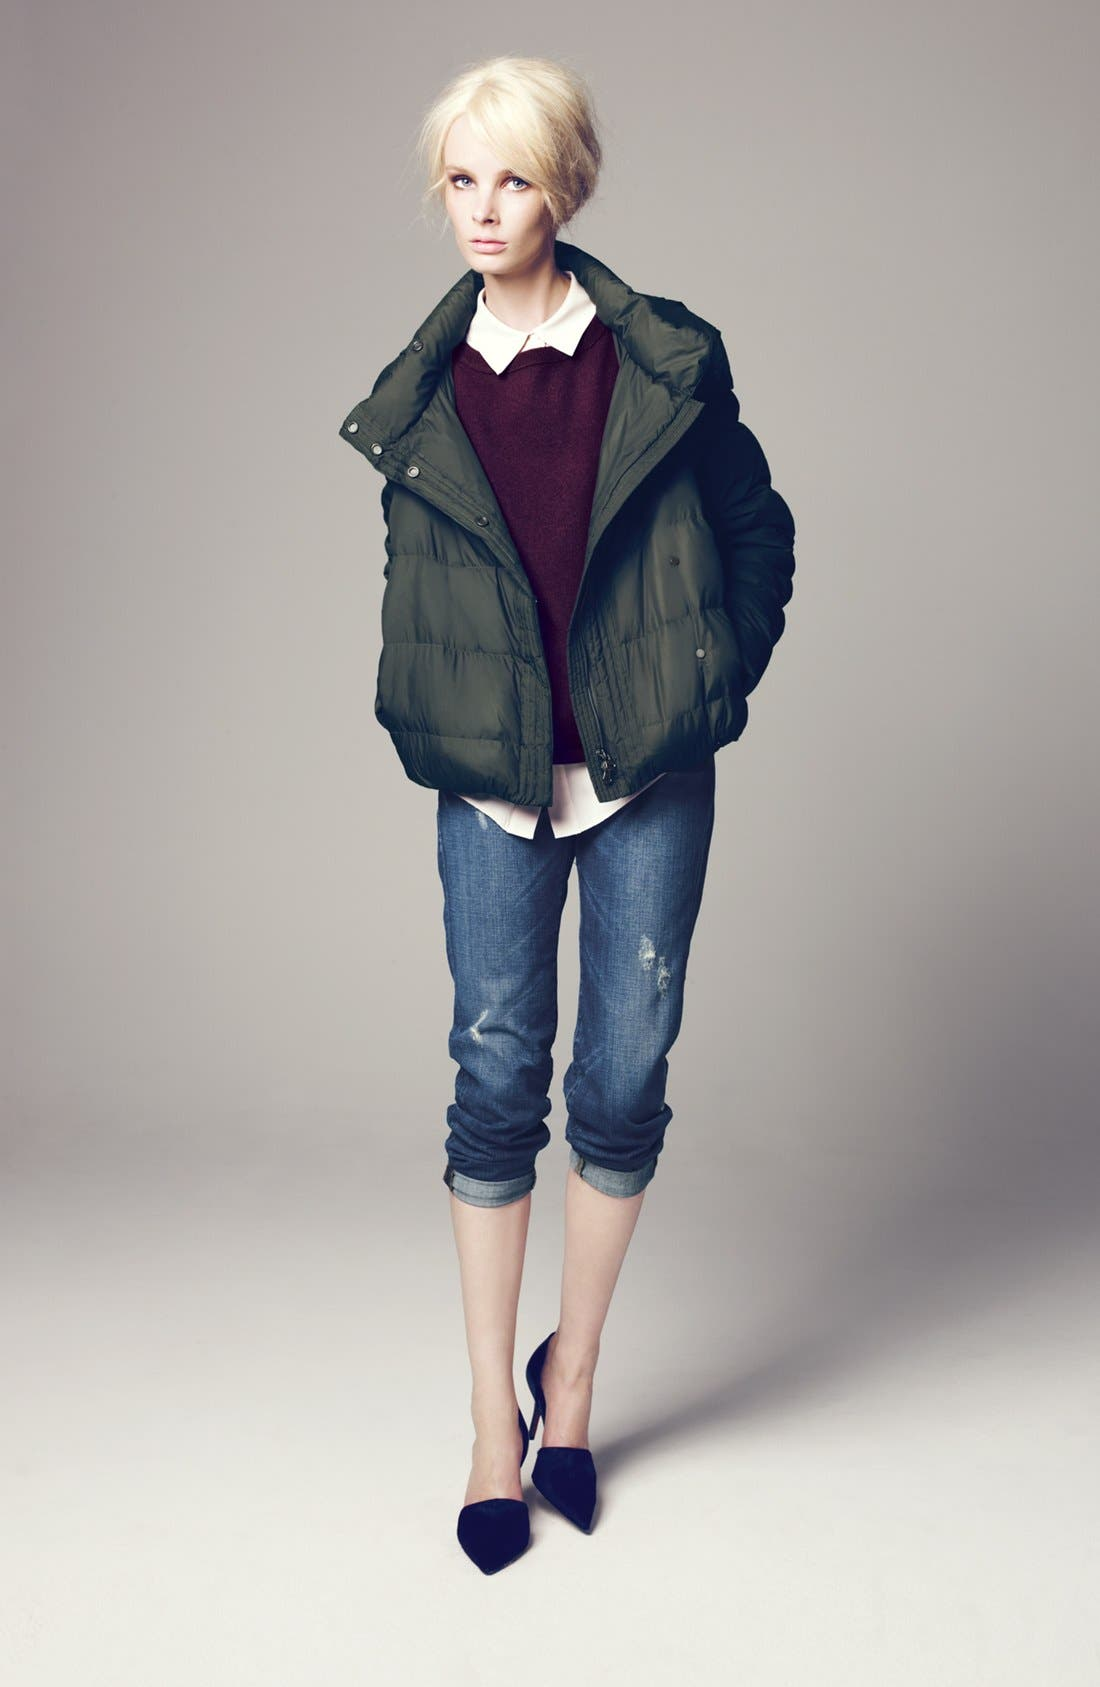 Alternate Image 1 Selected - Vince Jacket, Cashmere Sweater, Silk Blouse & Jeans